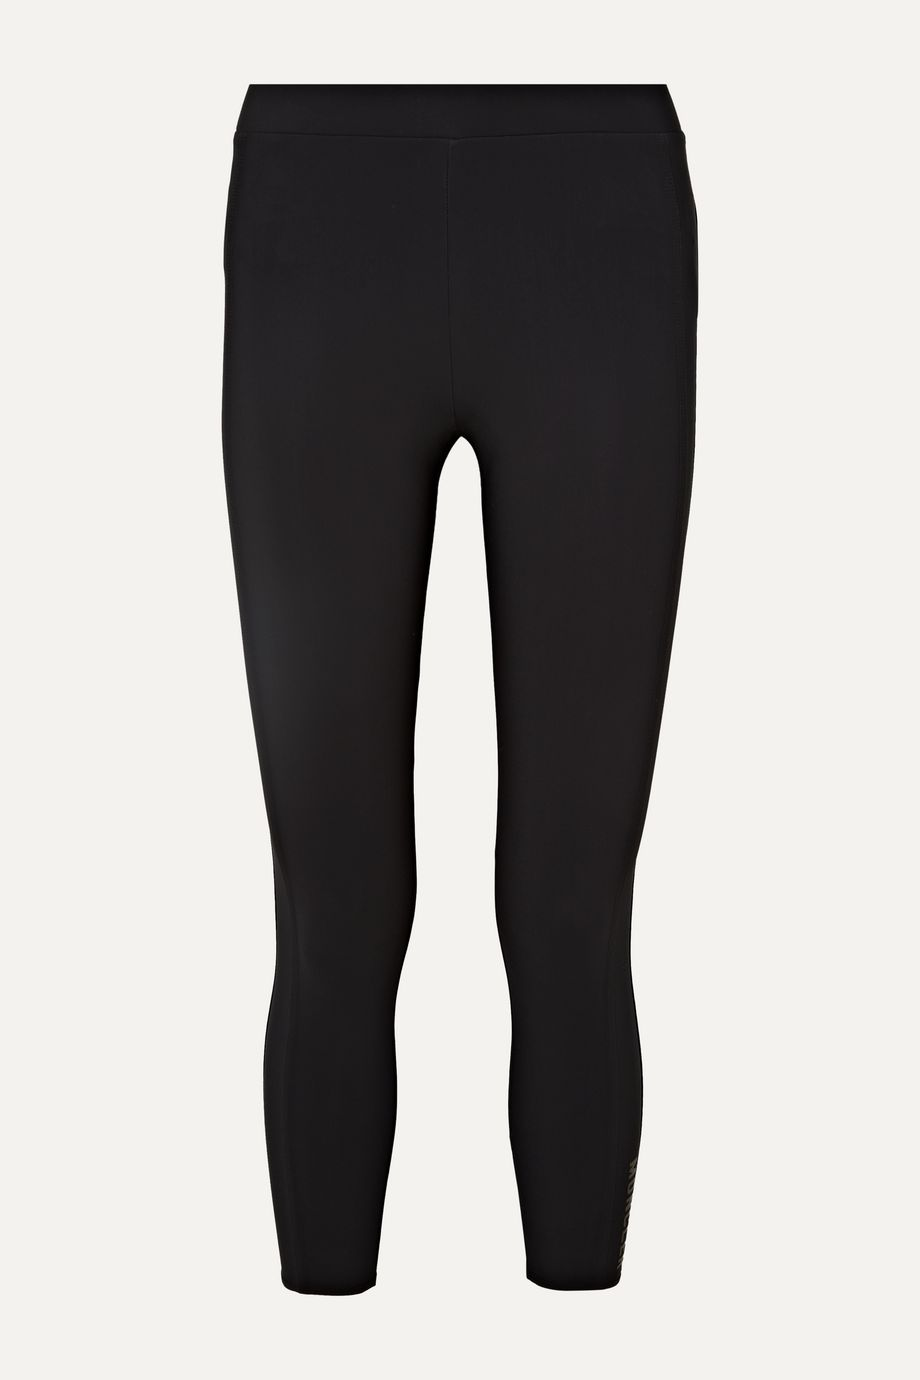 Moncler Stretch leggings